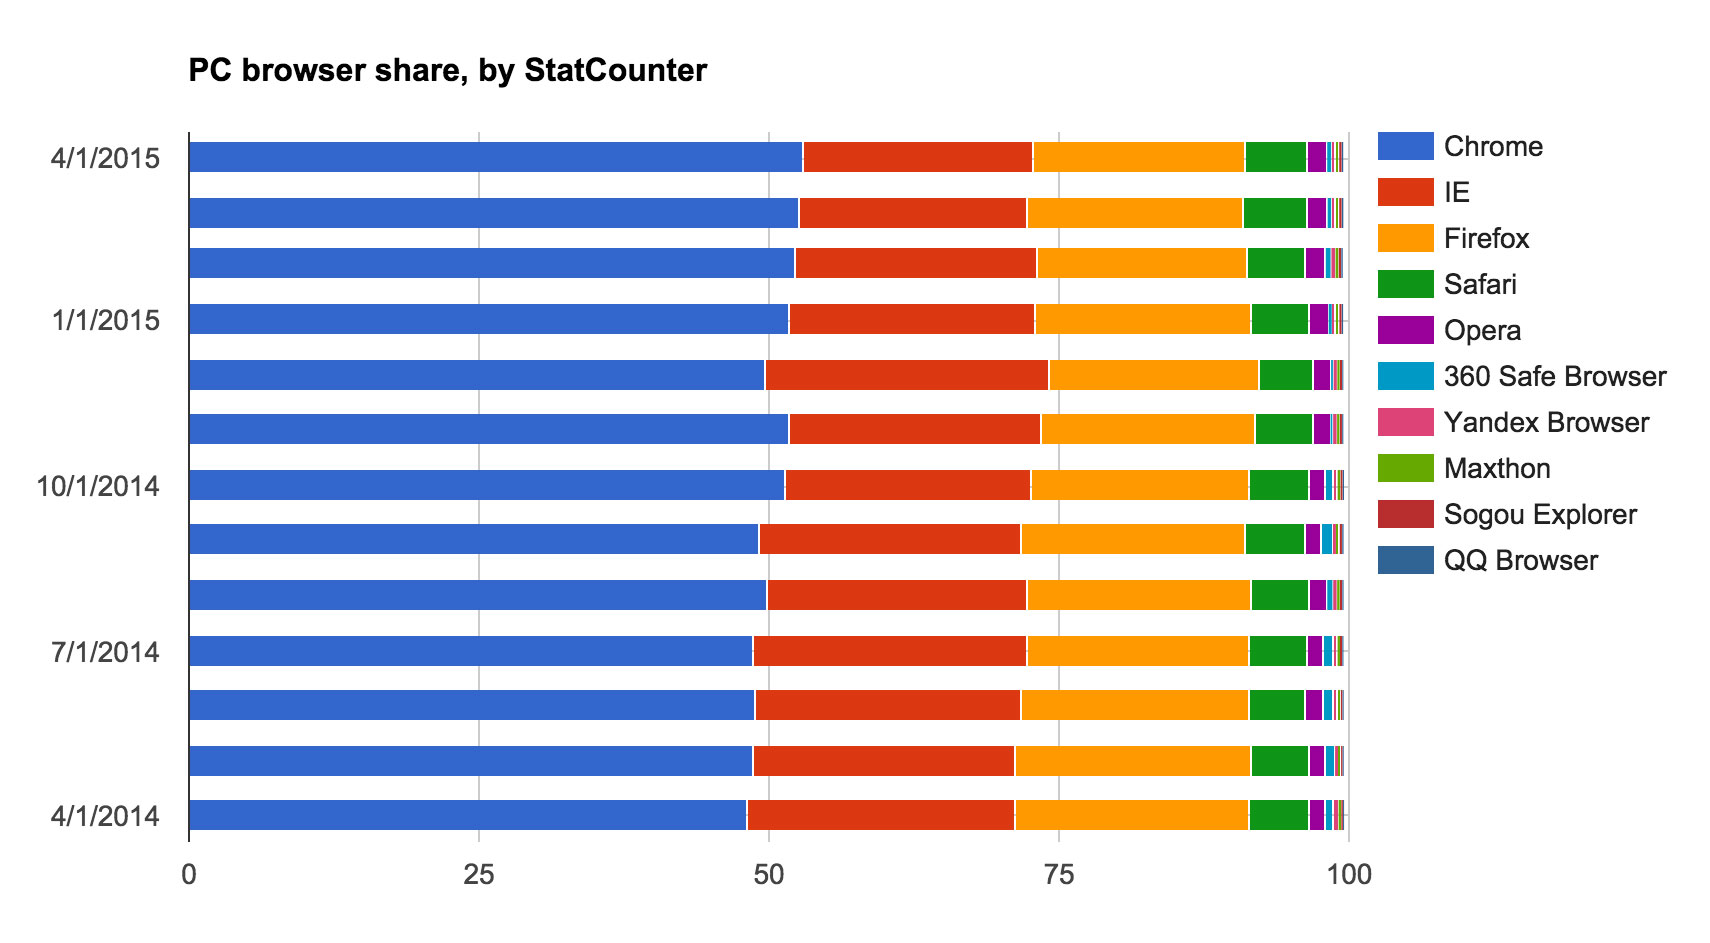 Yandex.Browser places seventh in global PC browser usage -- but only accounts for only 0.4 percent of website usage.